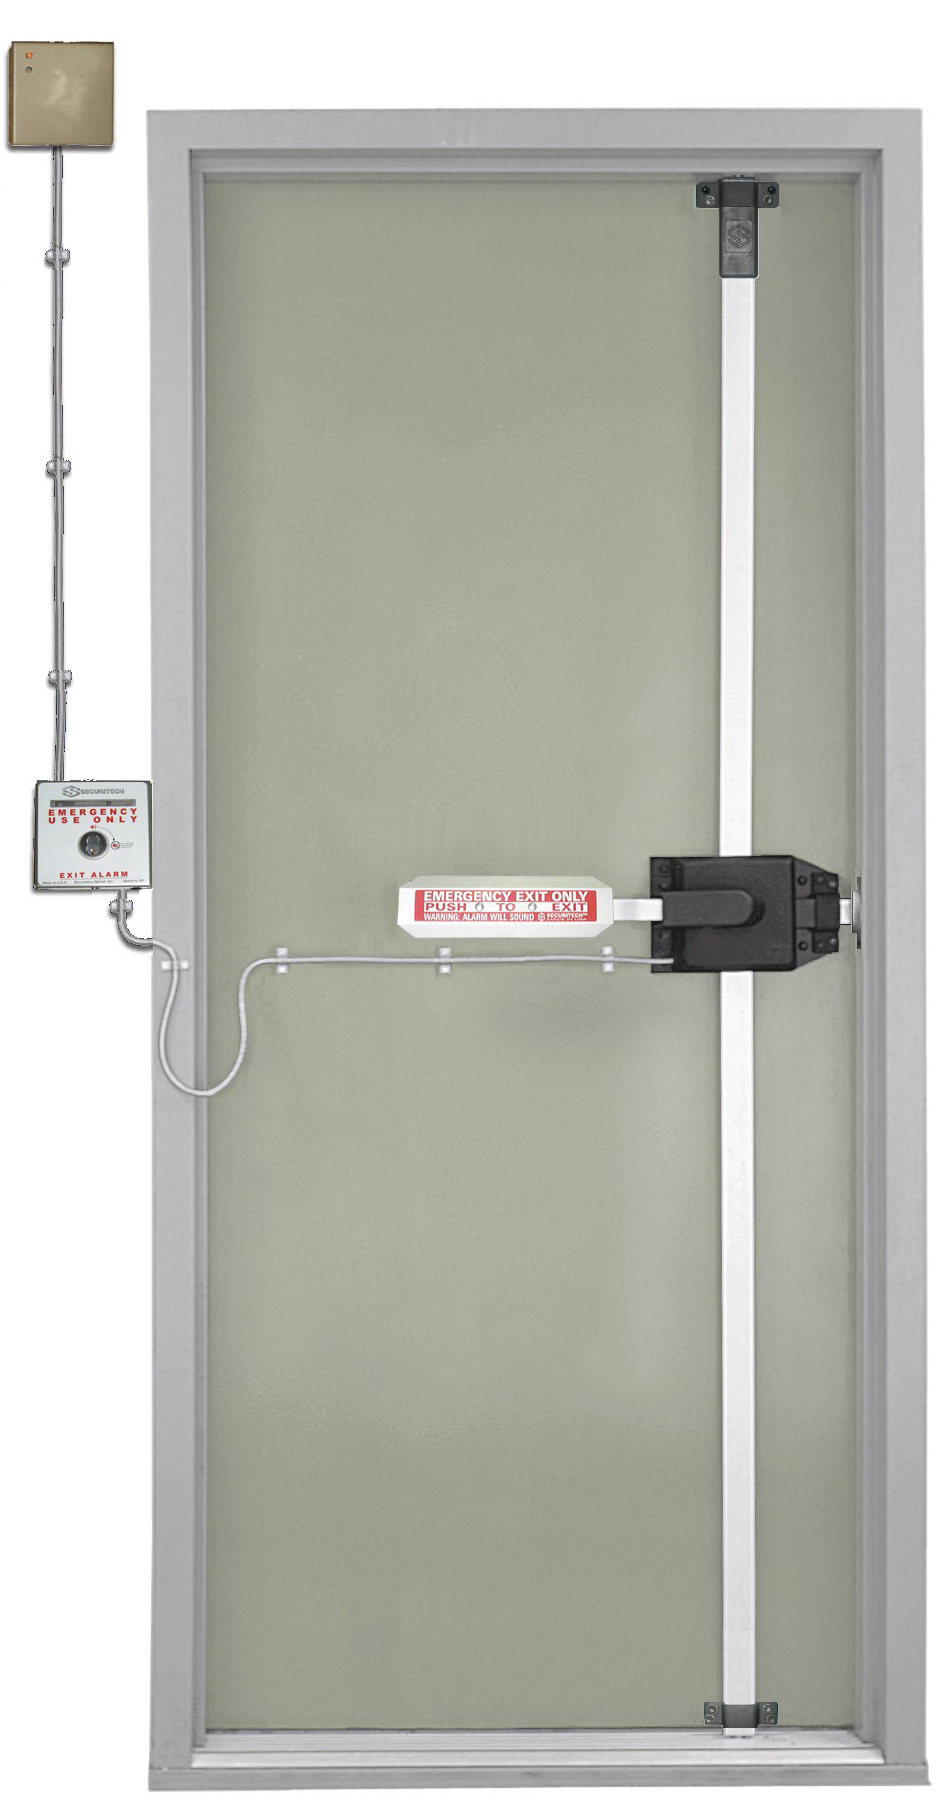 high security door locks. emergency exit steel doors with panic button 1 high security door locks